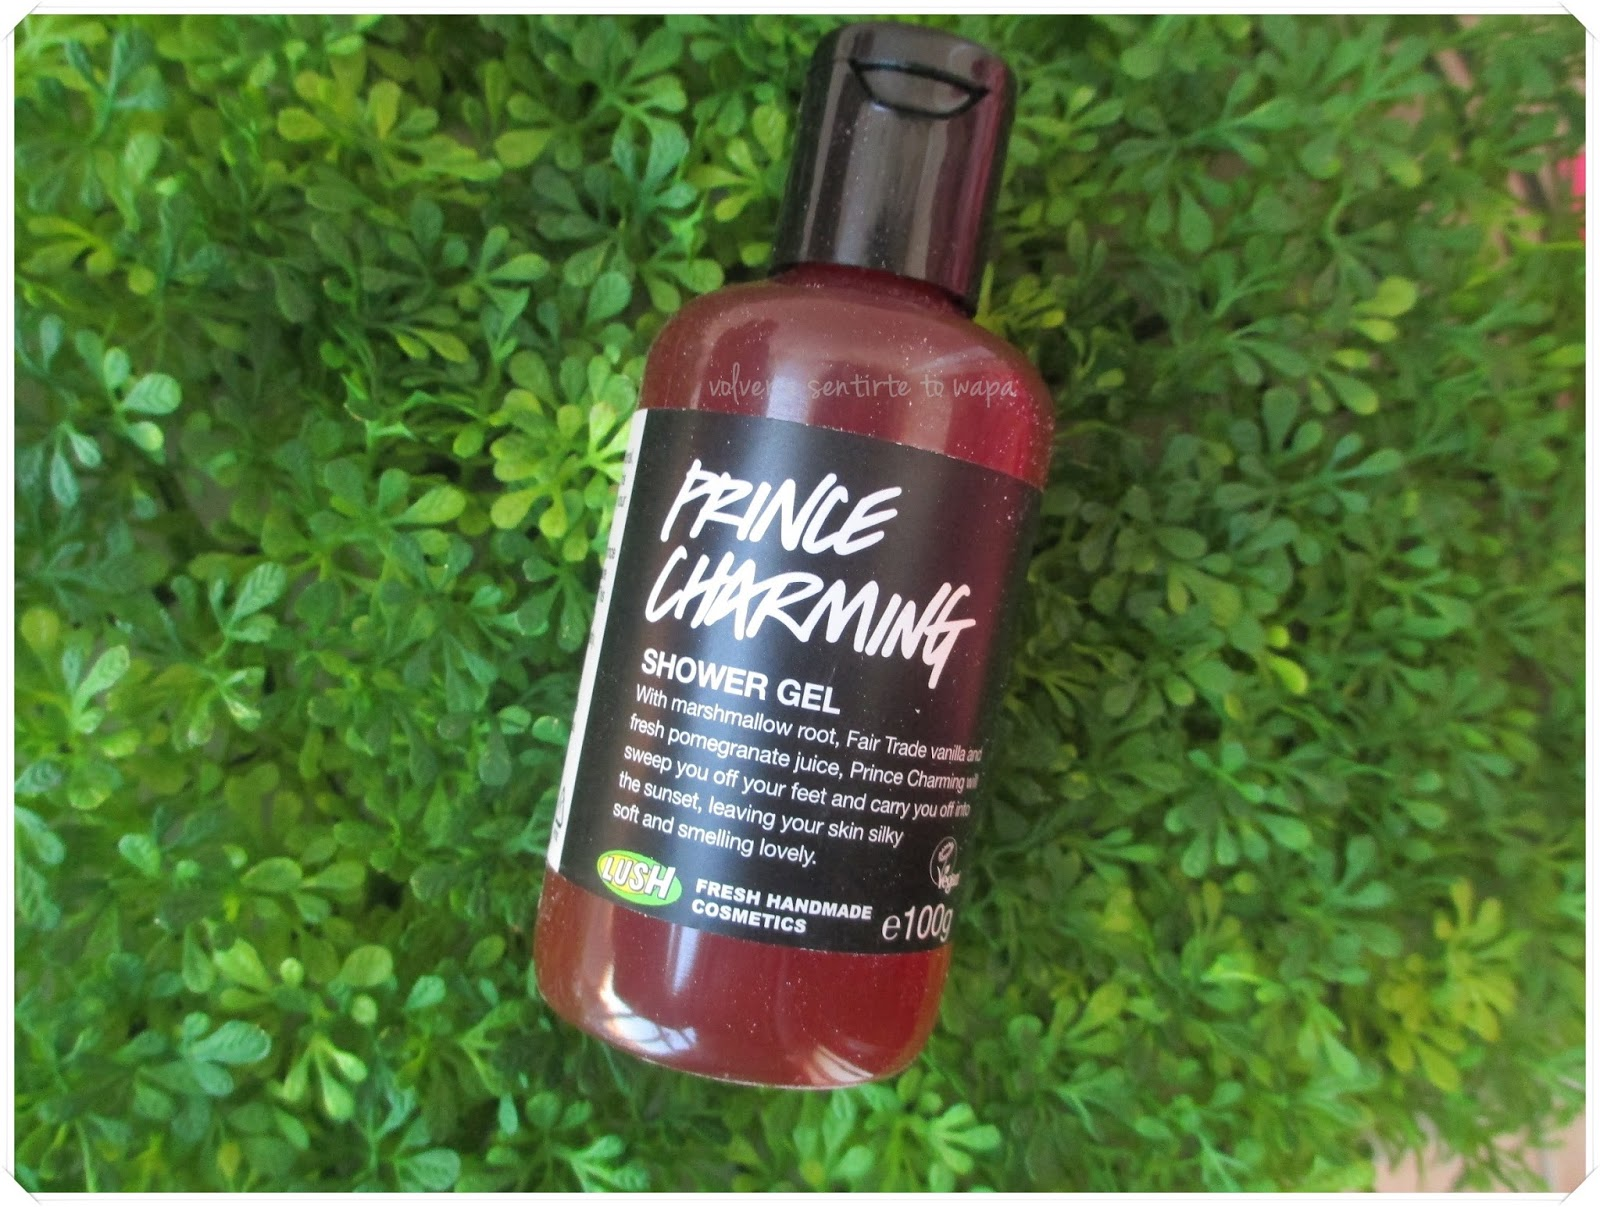 LOTS OF LOVE de LUSH - Gel Princess Charming